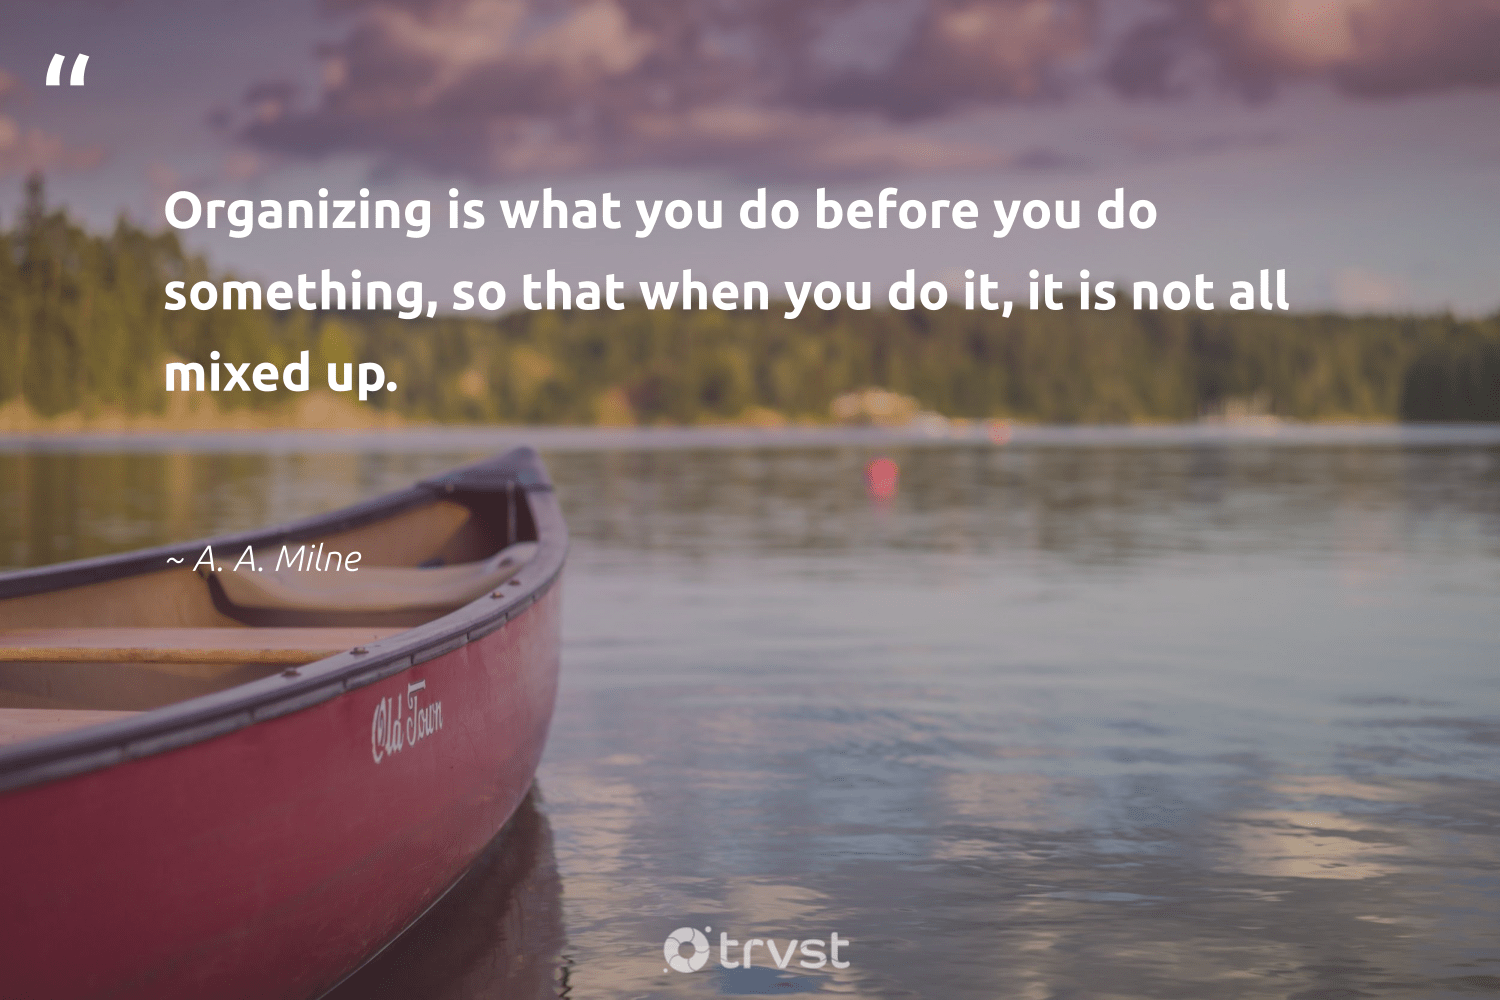 """""""Organizing is what you do before you do something, so that when you do it, it is not all mixed up.""""  - A. A. Milne #trvst #quotes #dosomething #softskills #socialchange #futureofwork #bethechange #begreat #dotherightthing #nevergiveup #planetearthfirst #socialimpact"""